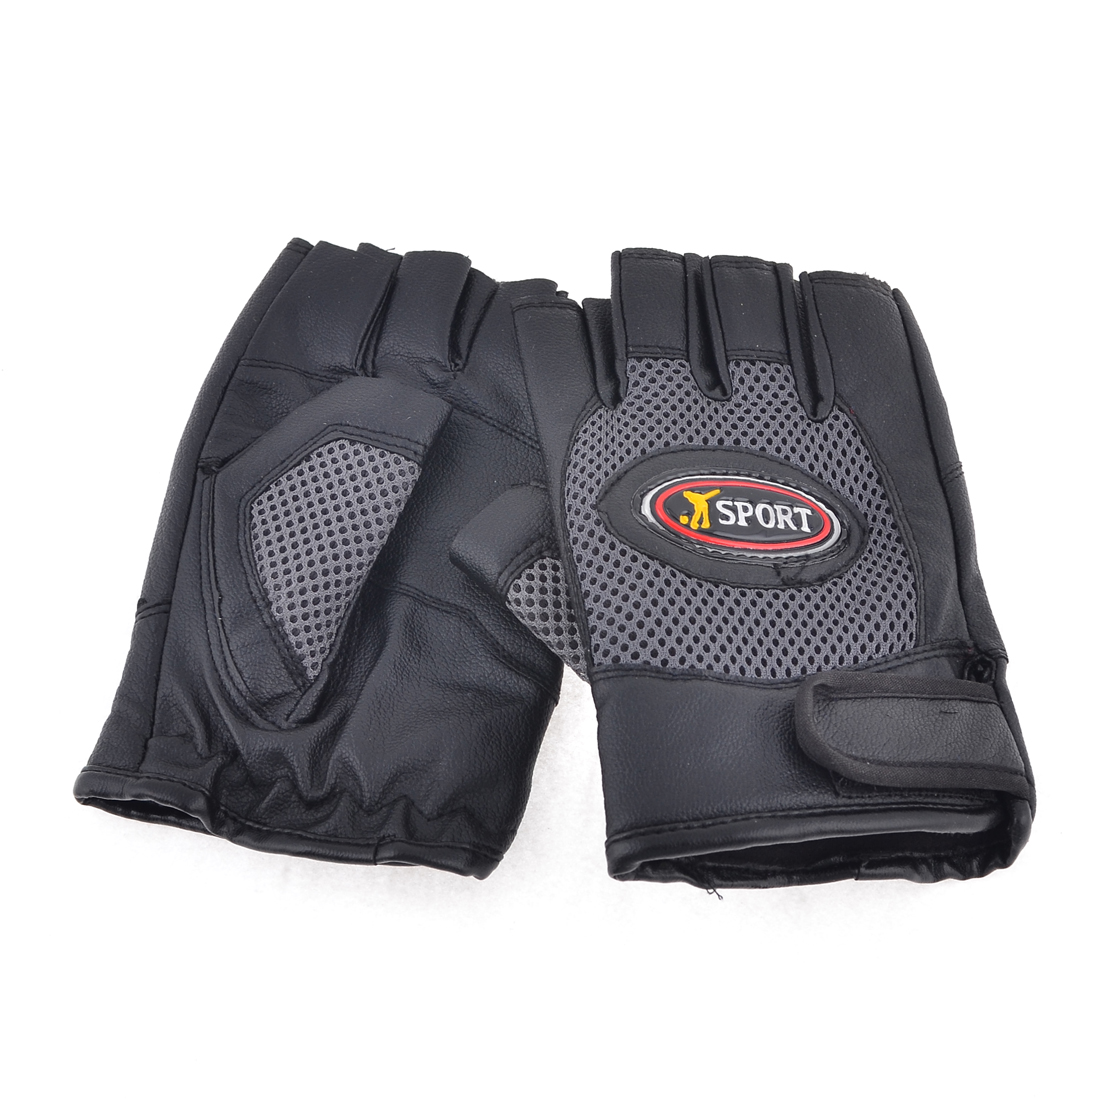 Adults Faux Leather Sports Cycling Climbing Half Finger Gloves Pair Black Brown